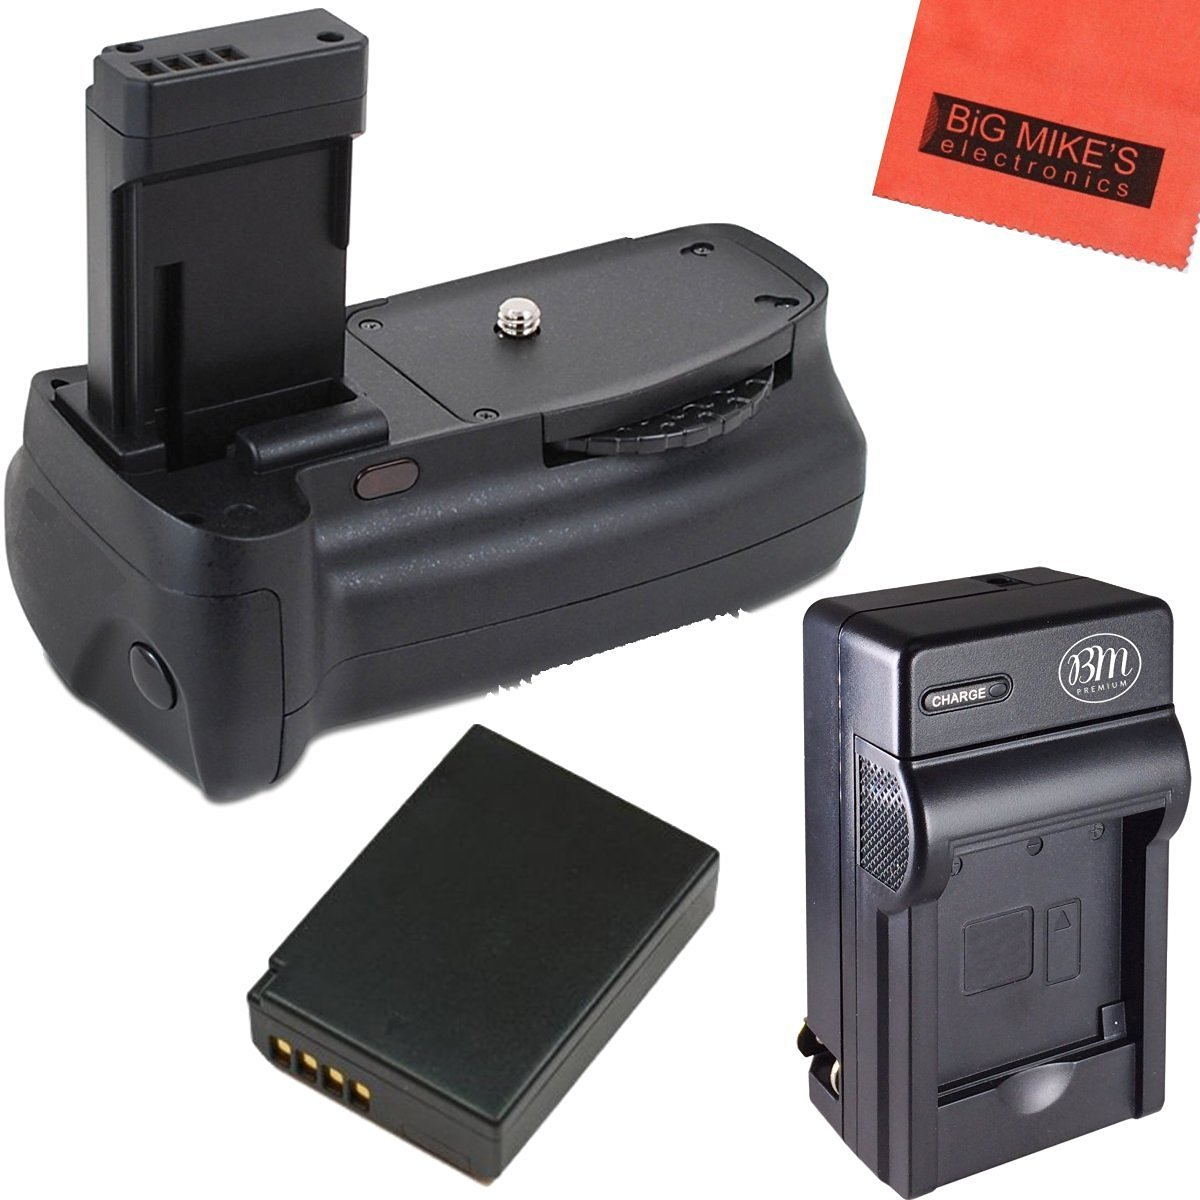 Battery Grip Kit for Canon EOS Rebel T3, T5, T6, Kiss X50, Kiss X70, EOS 1100D, EOS 1200D, EOS 1300D Digital SLR Camera Includes Qty 1 Replacement LP-E10 Battery + Battery Charger + Vertical Battery Grip + More!!